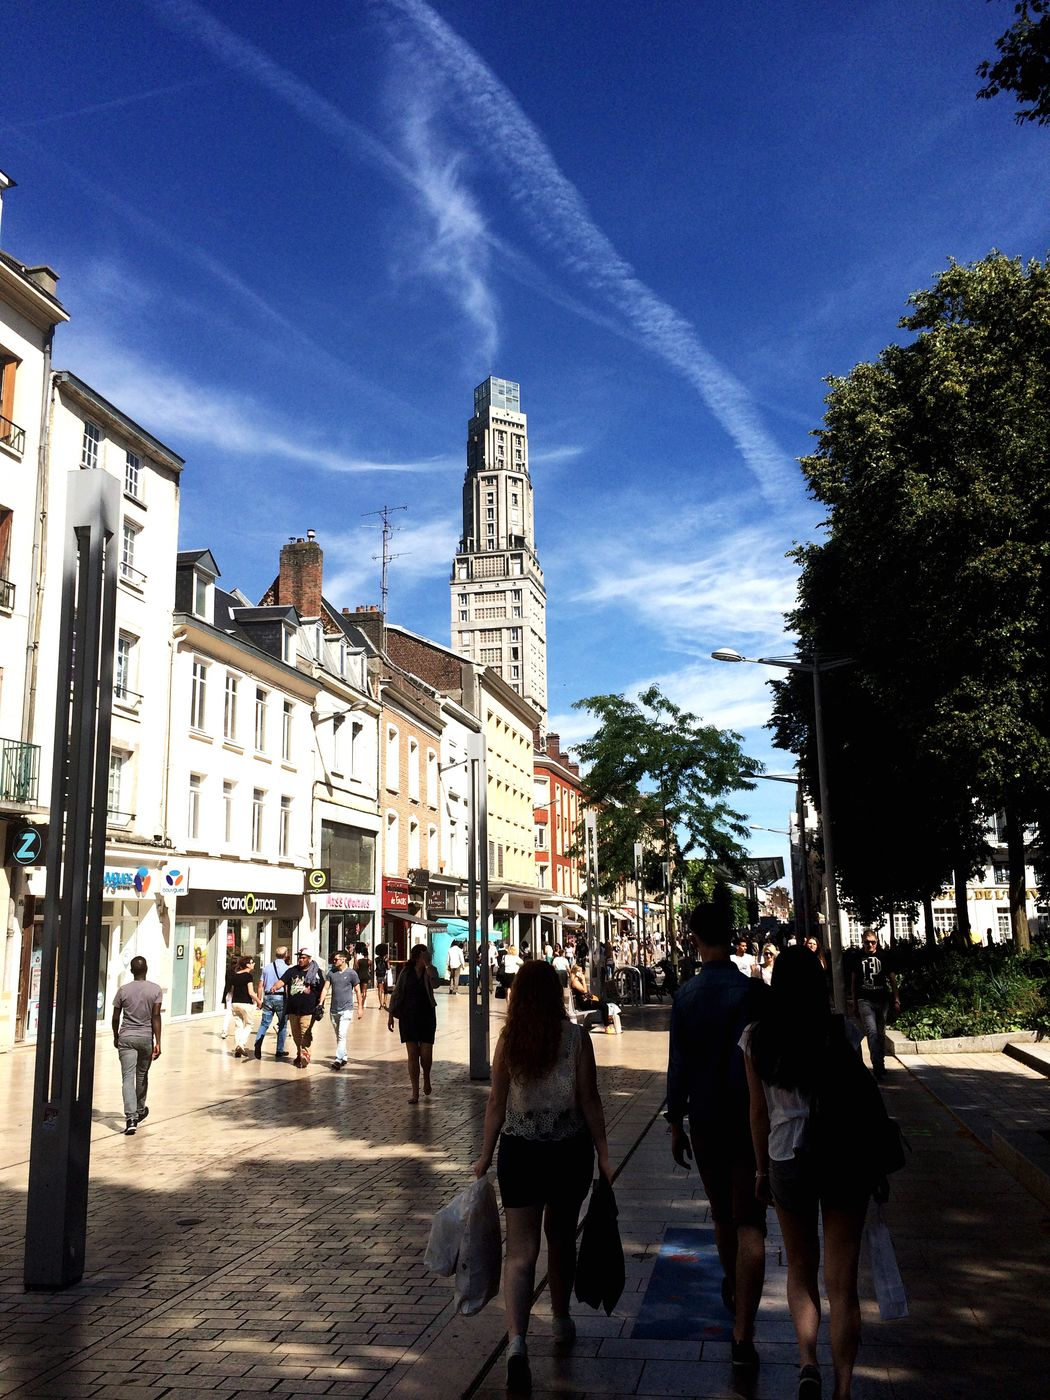 Streetphotography Shopping Time Sales Summer TourPerret Amiens Downtown Sunny Day Clear Sky